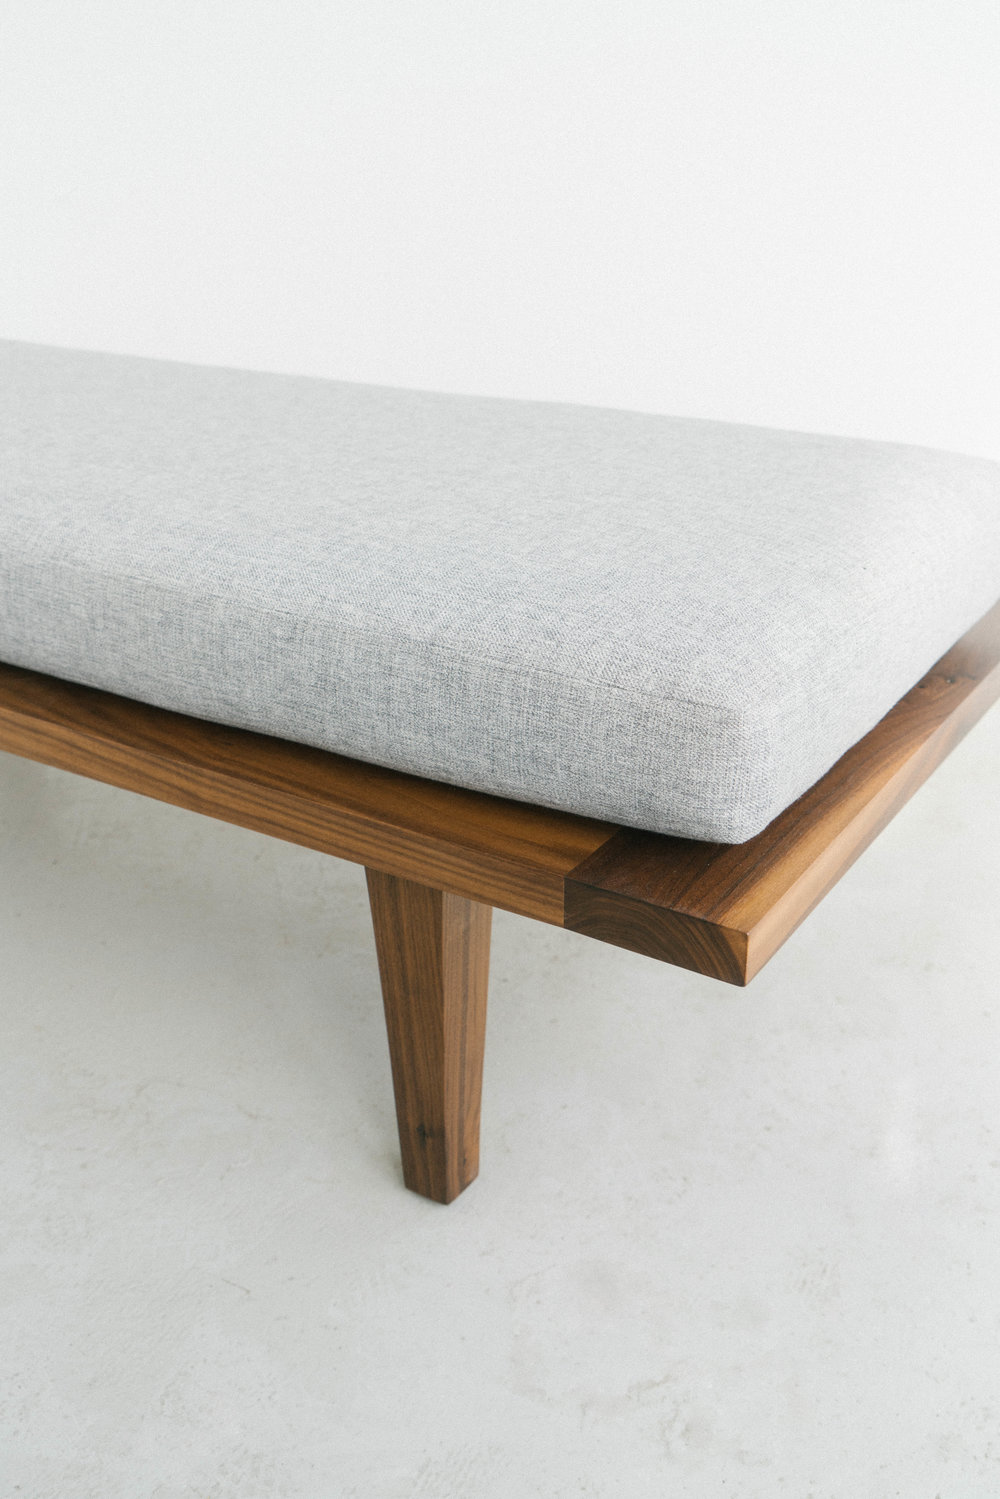 daybed3-s.jpg